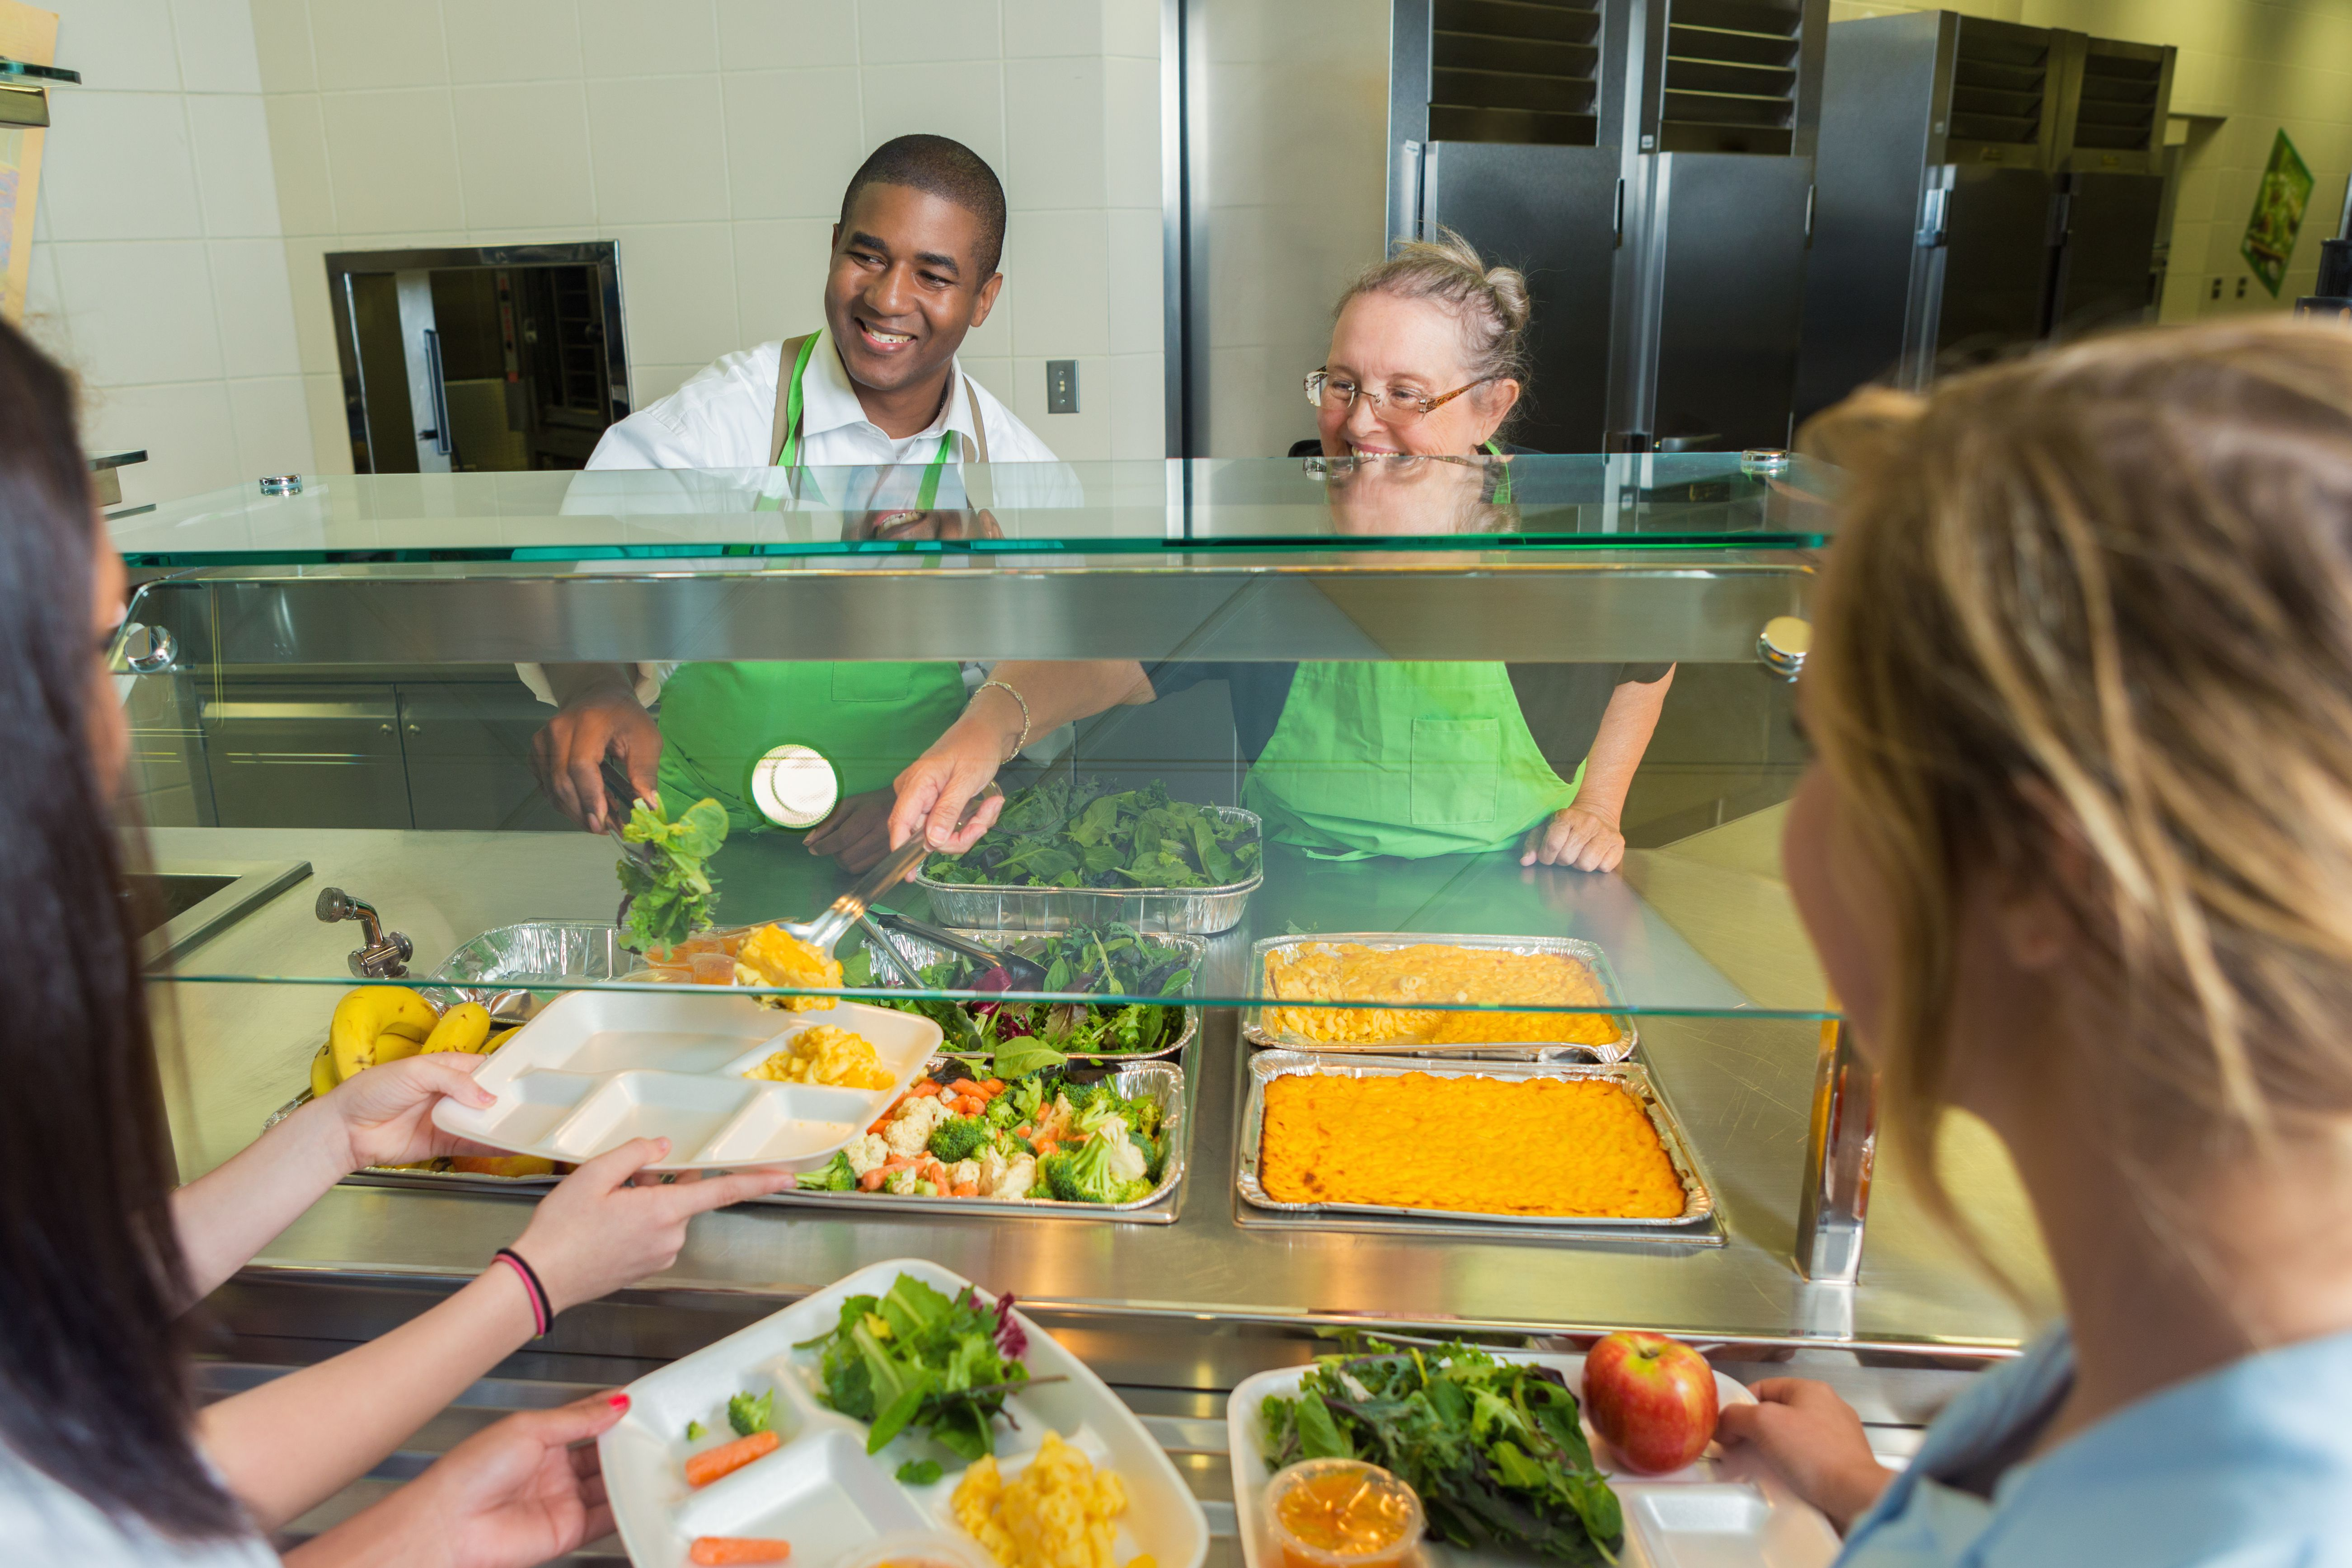 Diverse cafeteria works serve high school students